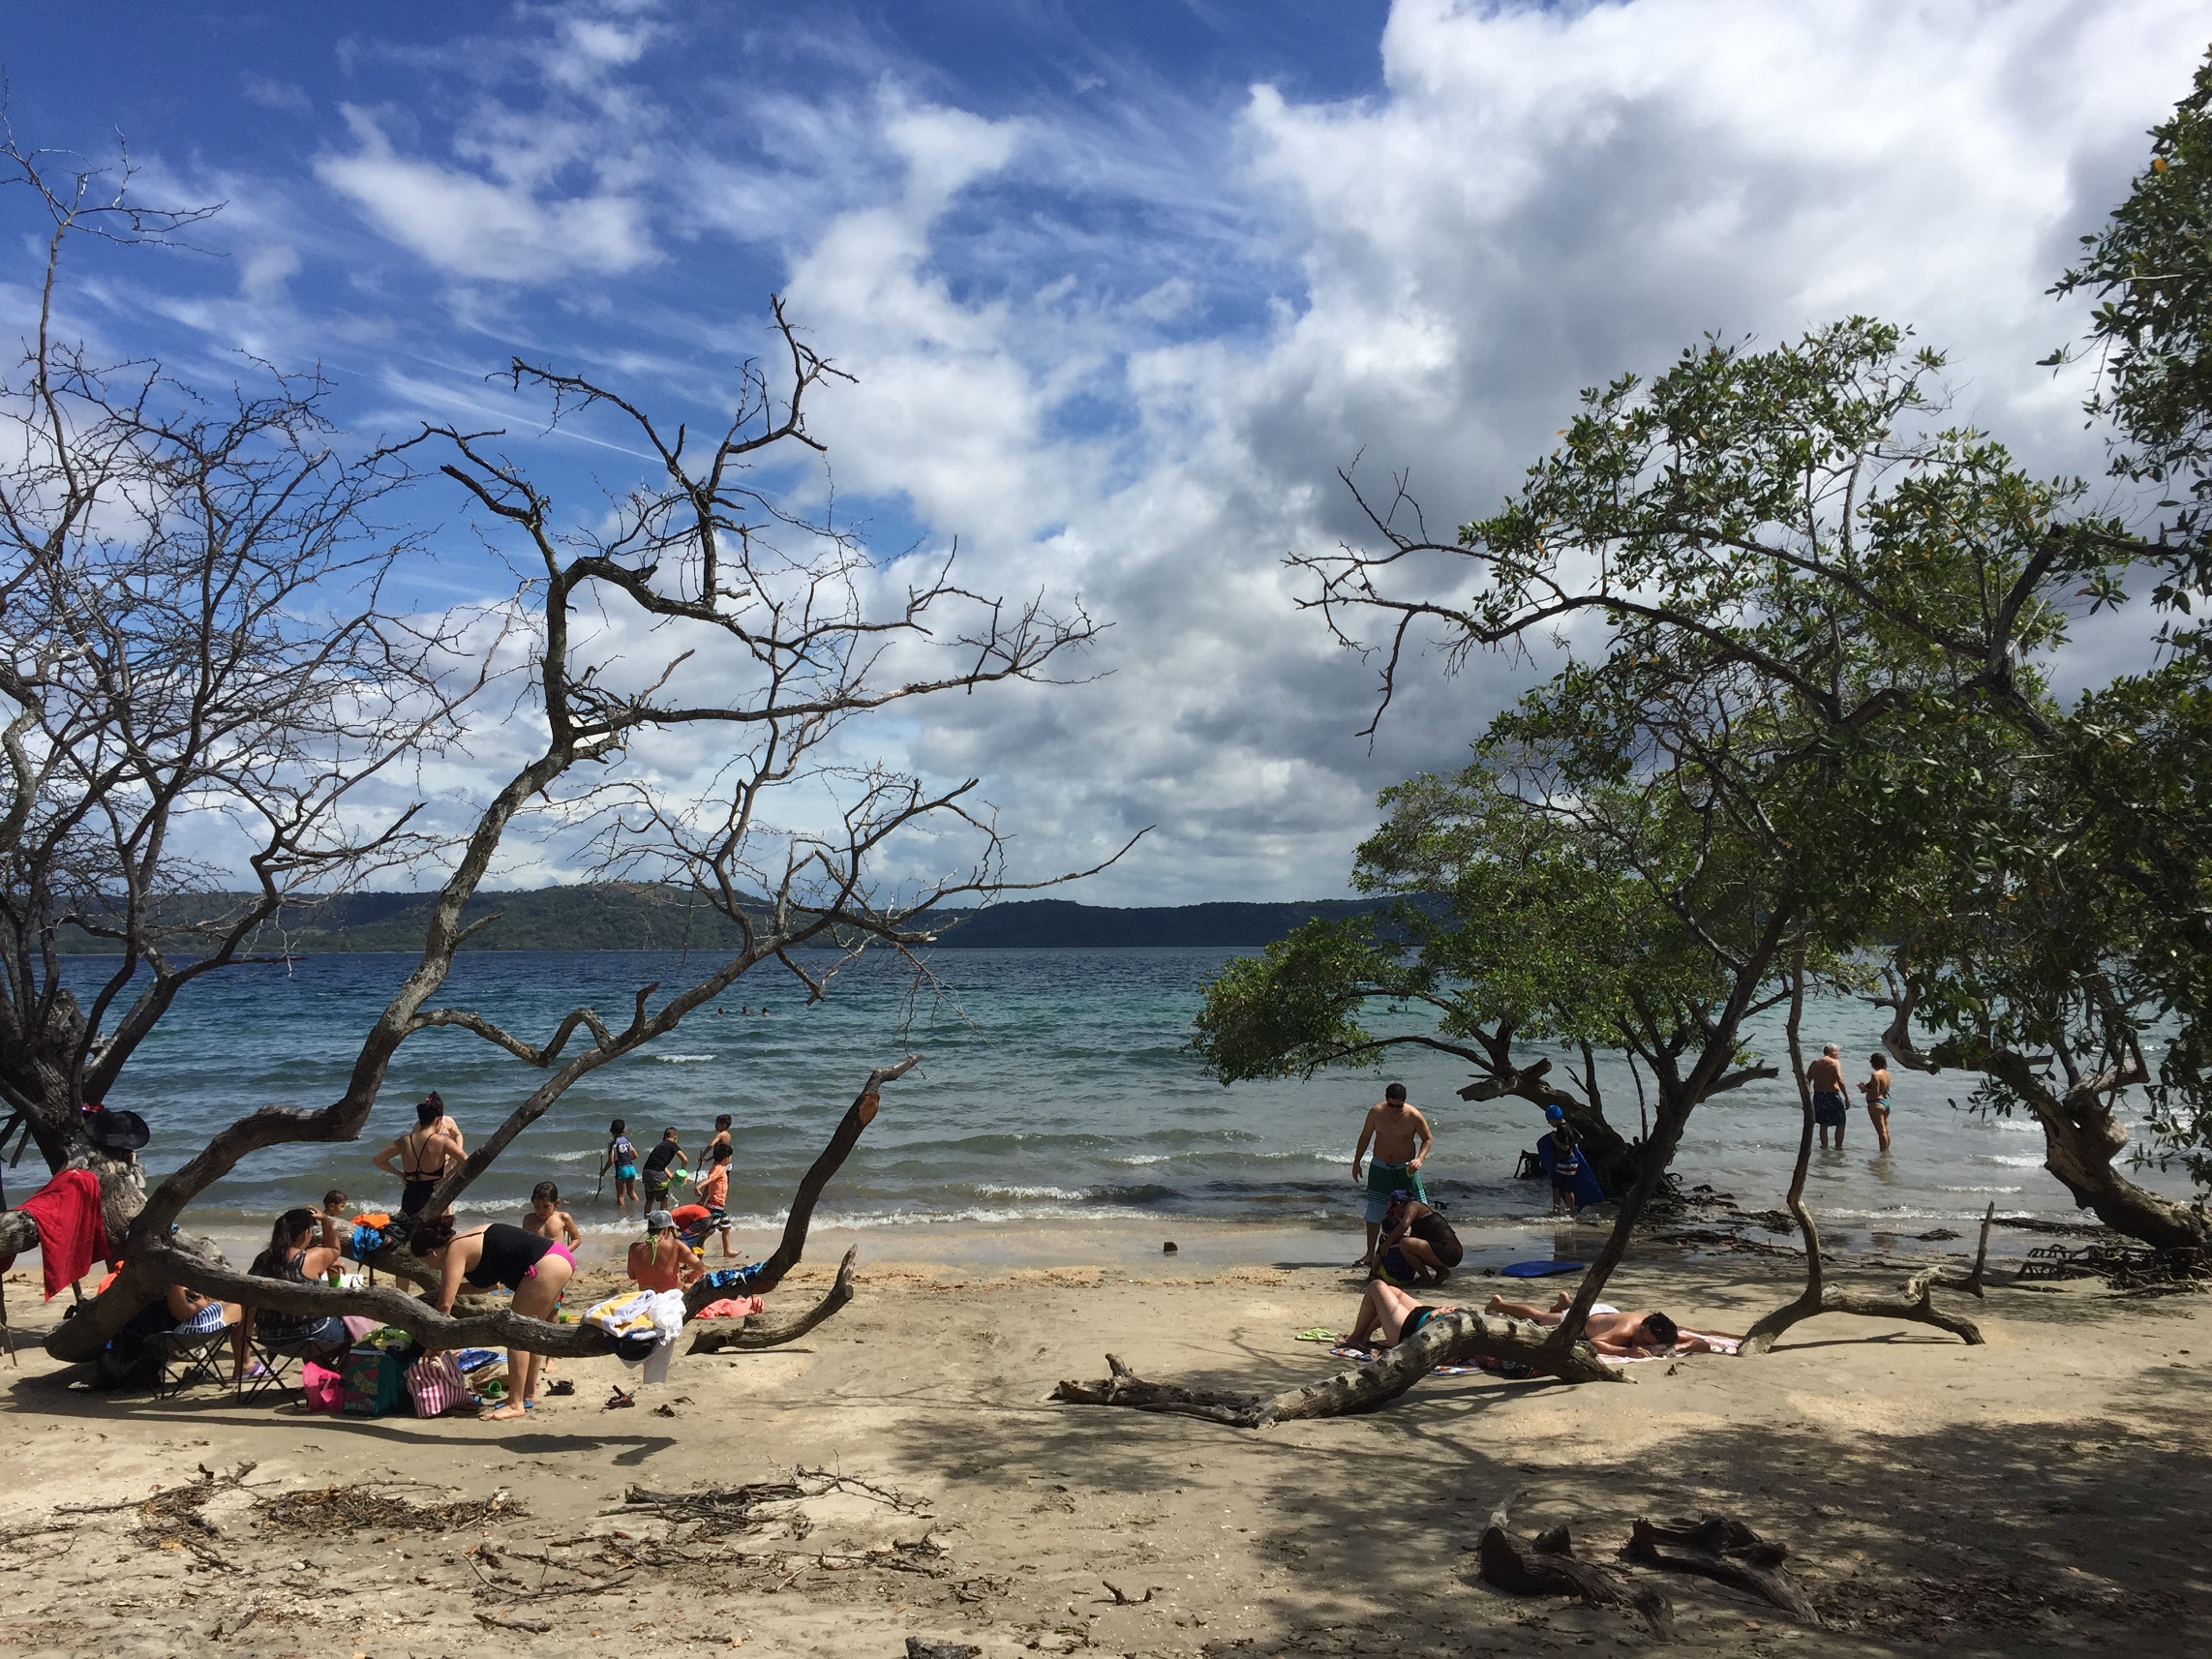 Nacascolo, Hidden Beach, Costa Rica, Those Someday Goals, Traveling Without a Net